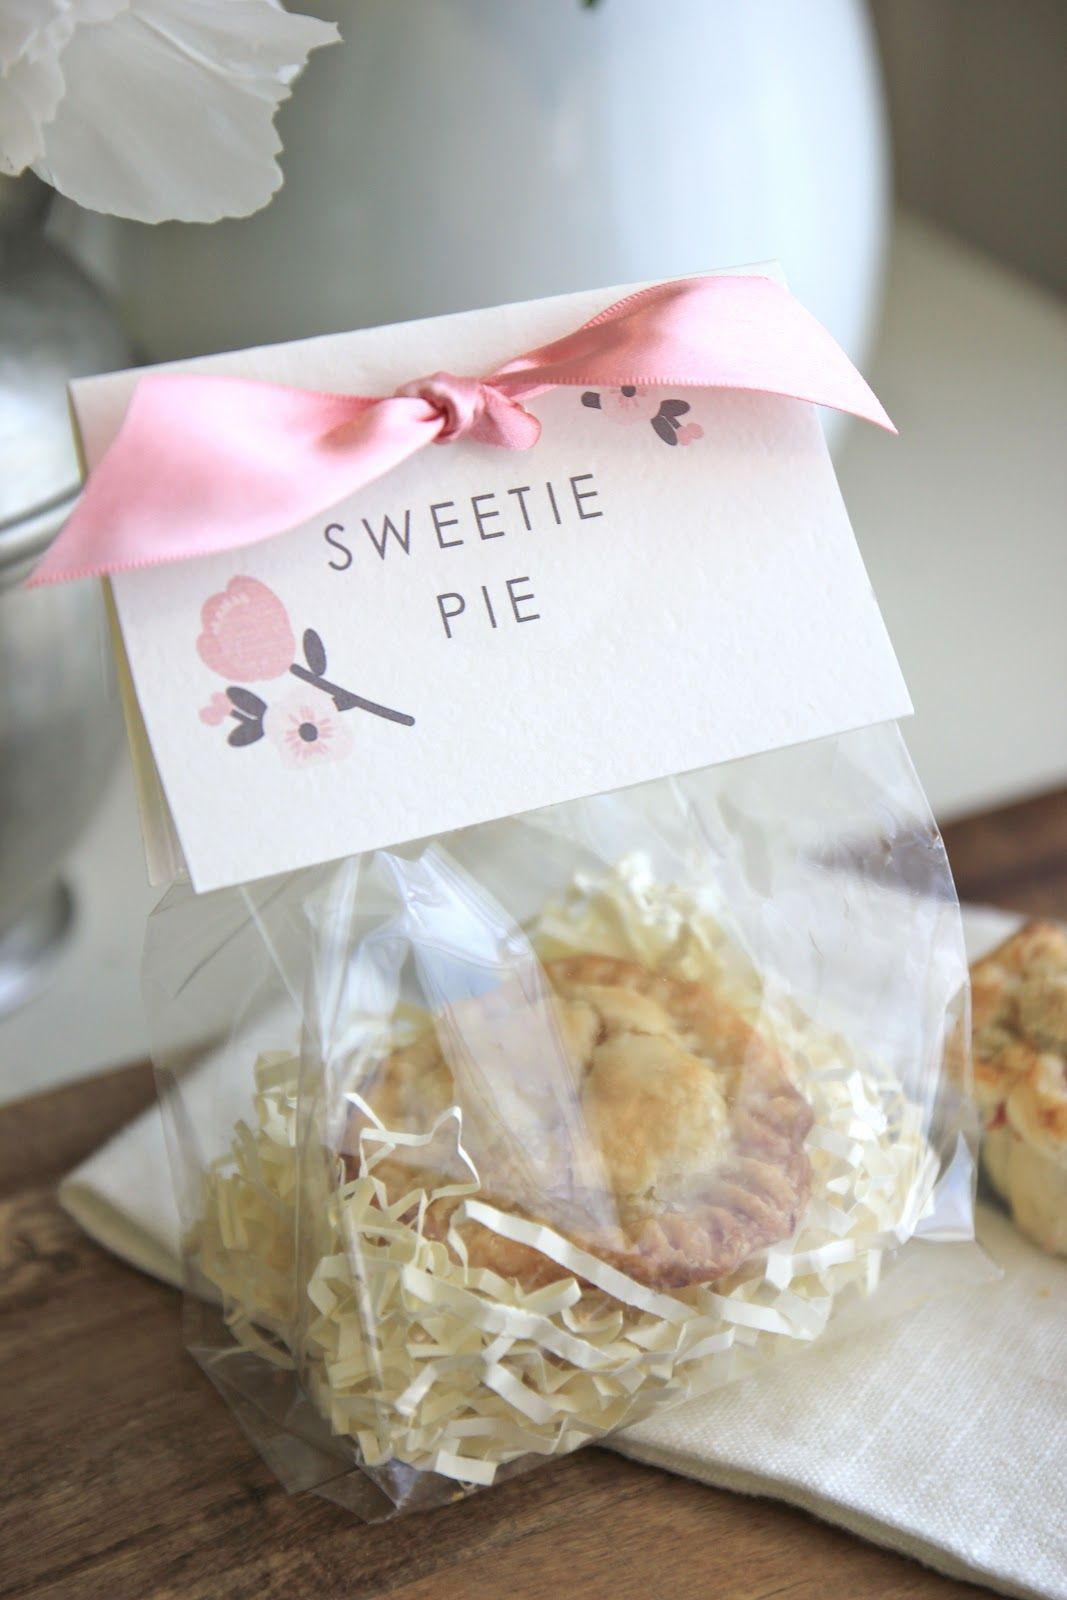 Last weekend I hosted a baby shower at my house. I made these mini ...